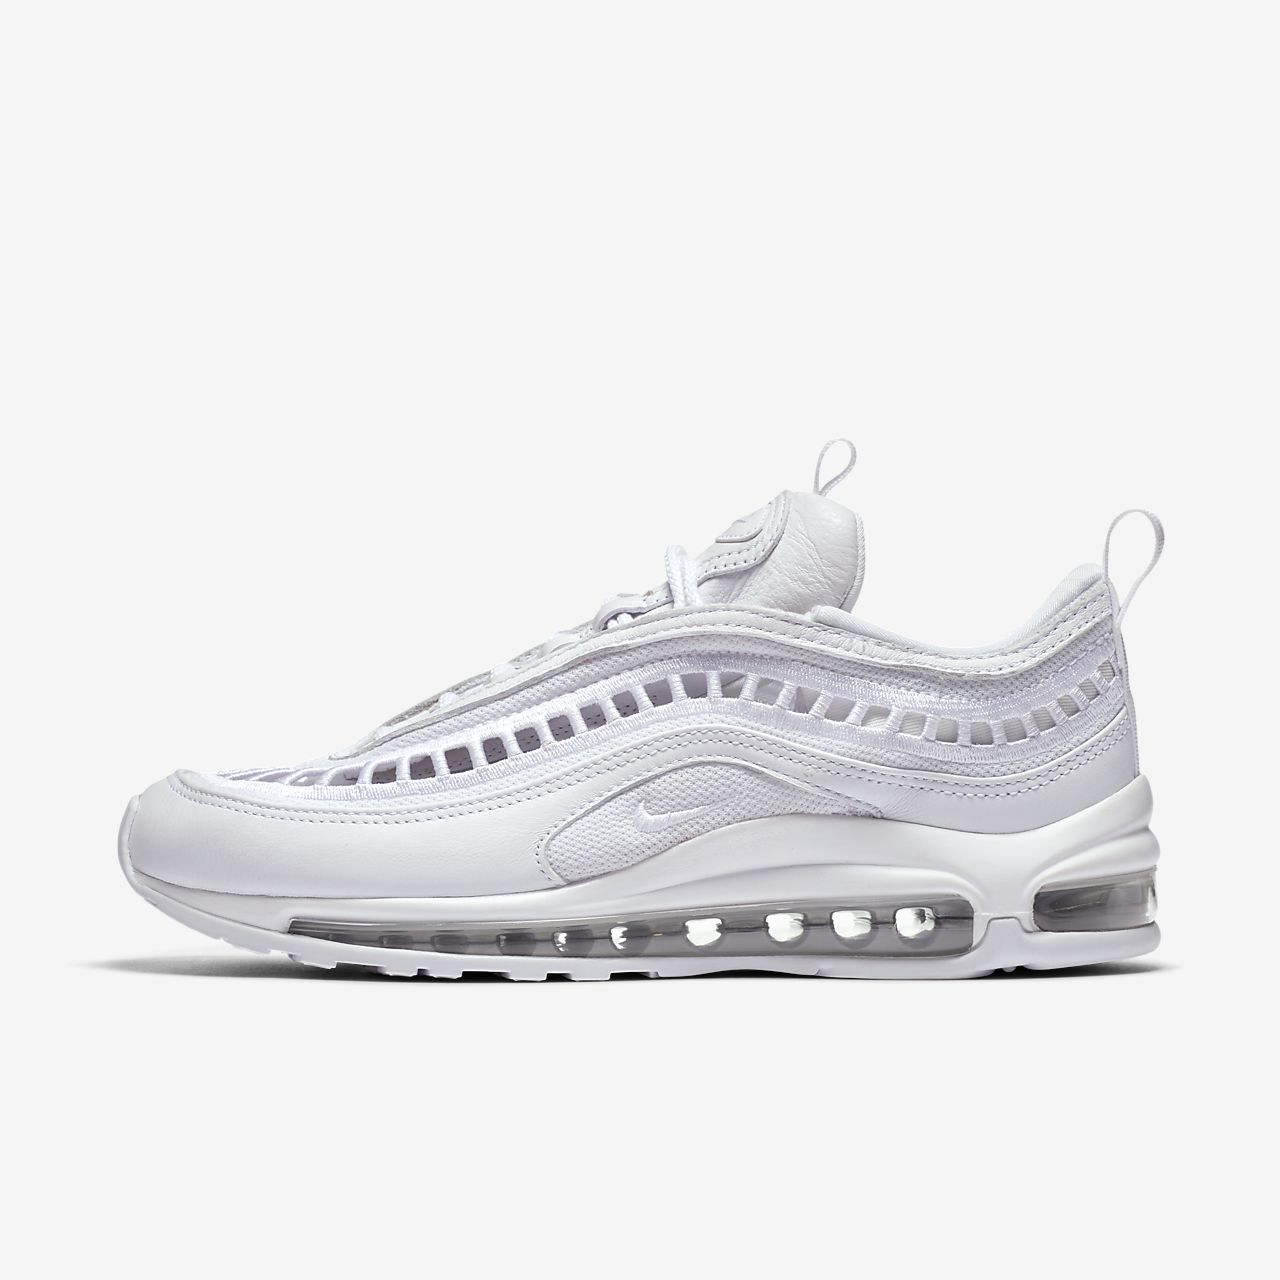 NIKE x OFF WHITE AIR MAX 97 US10.5 44.5 AM97 in Berlin